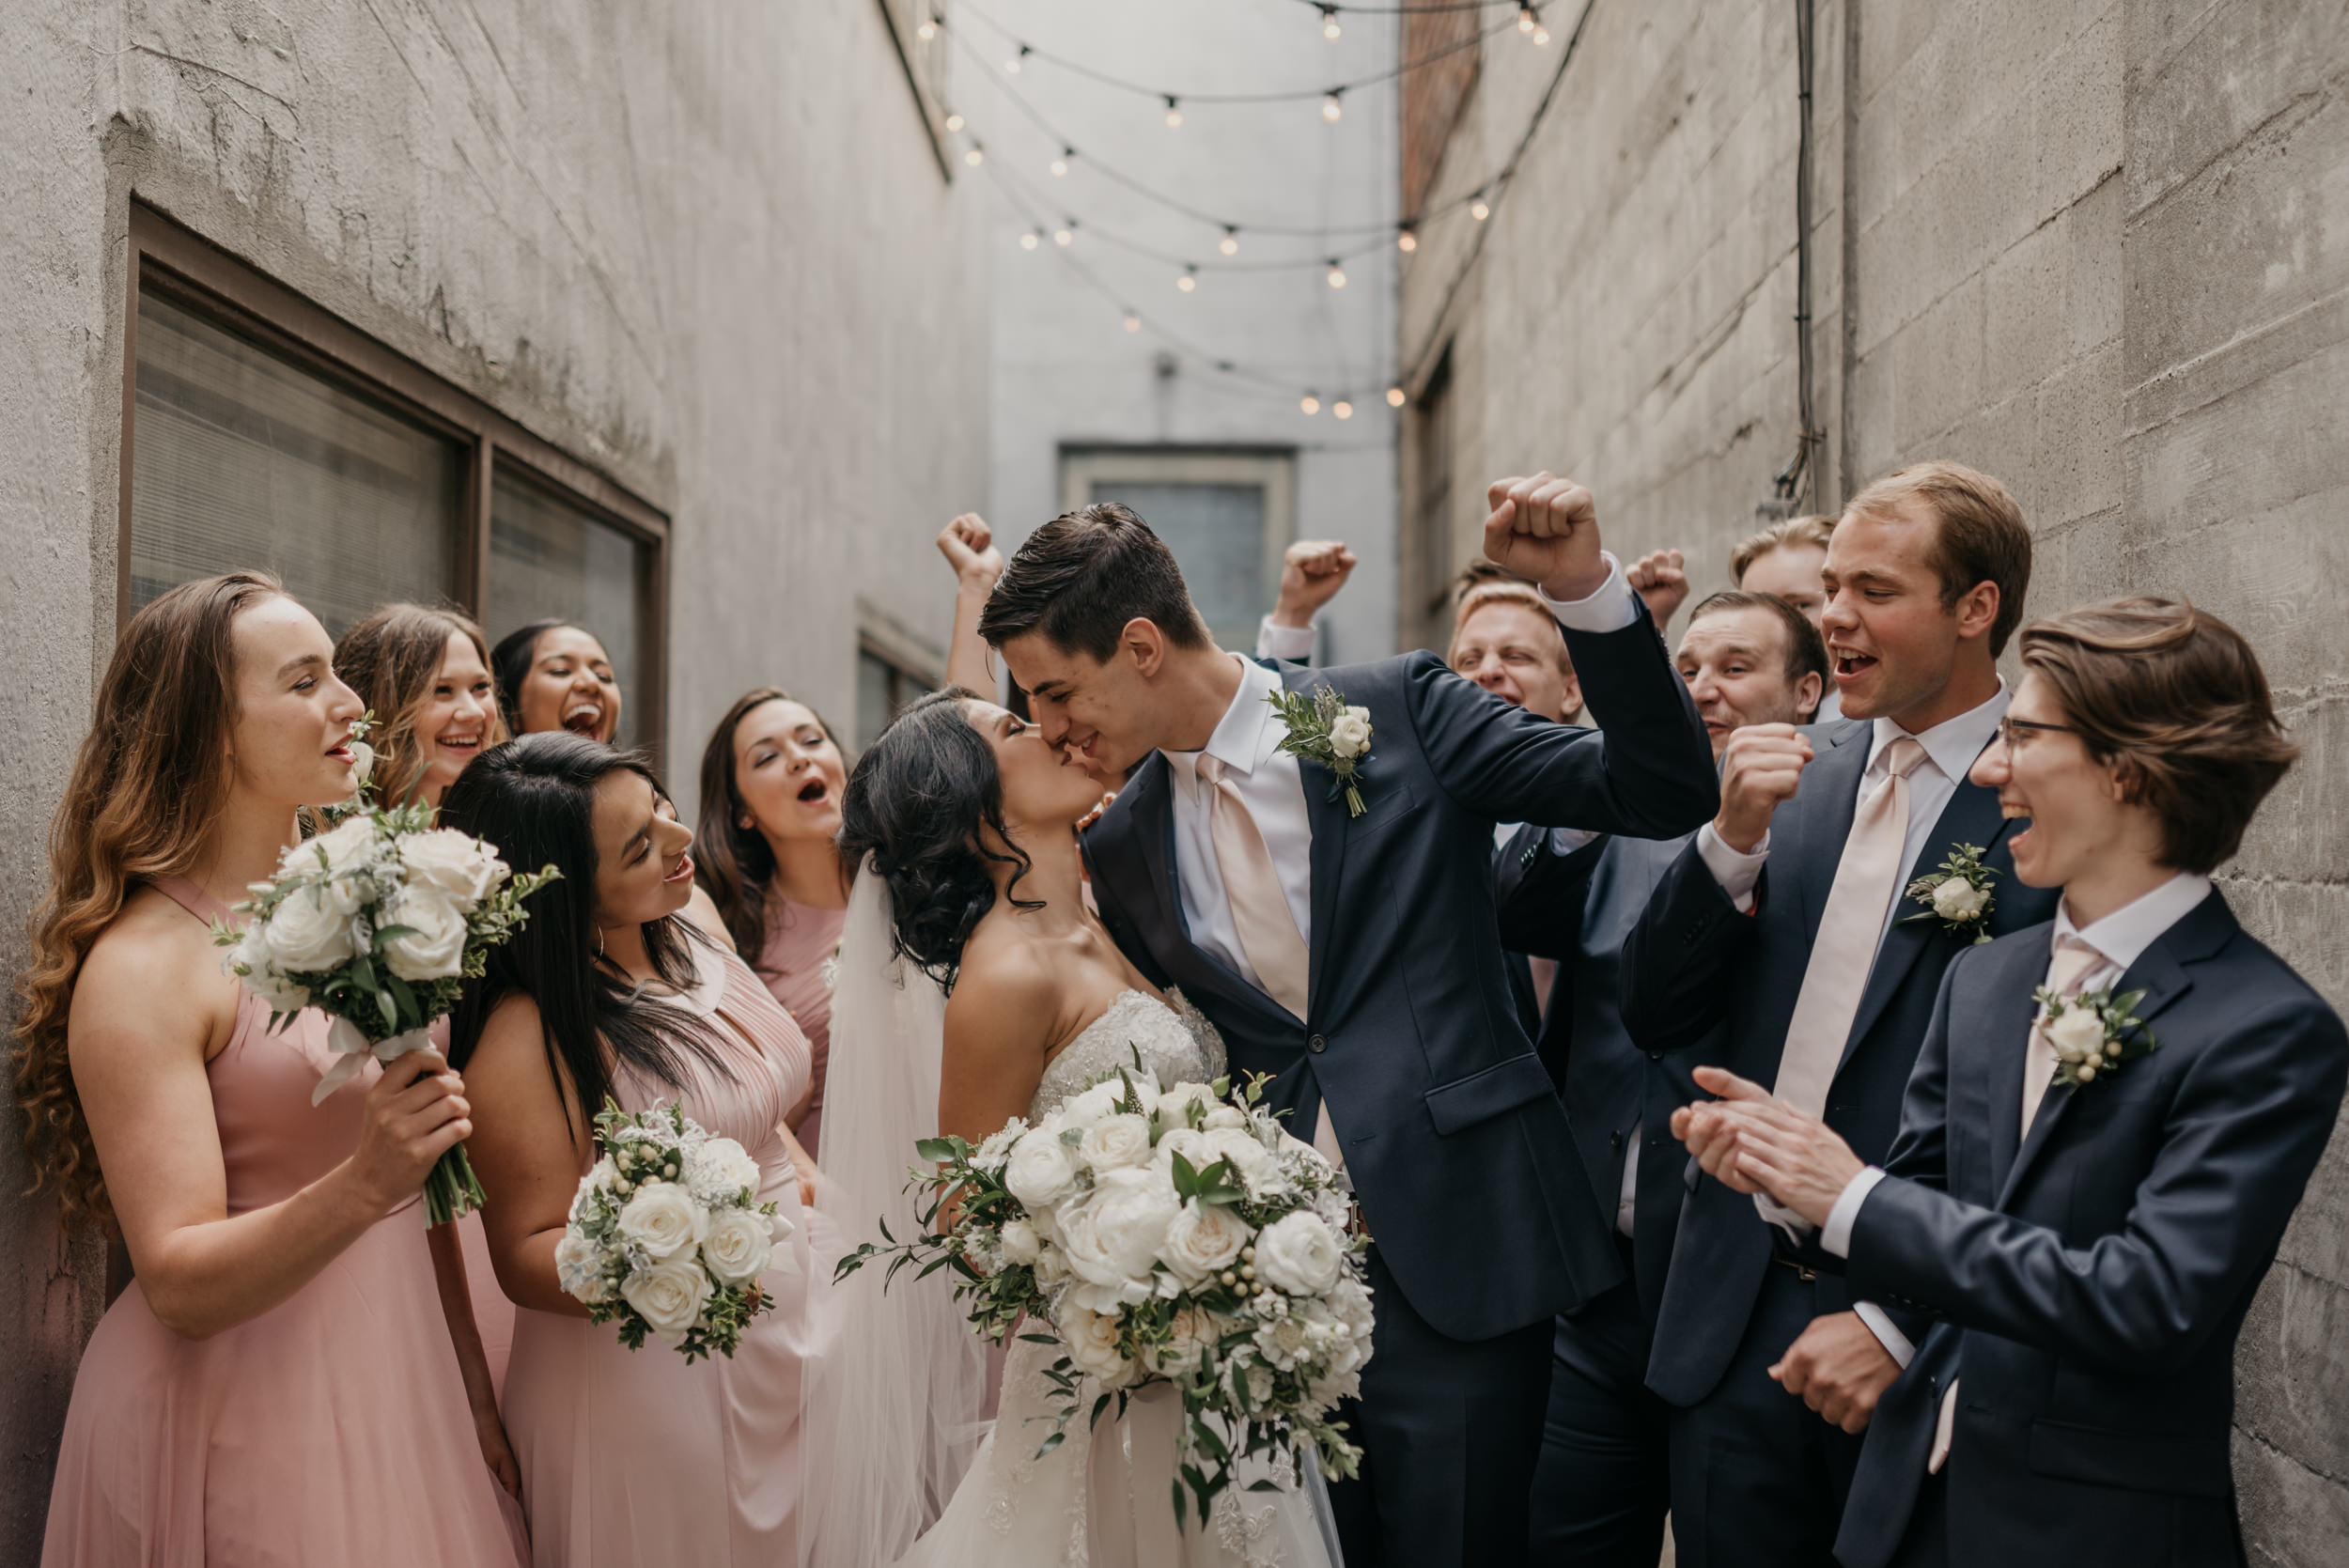 75-bridal-party-downtown-portland-first-look-7827.jpg